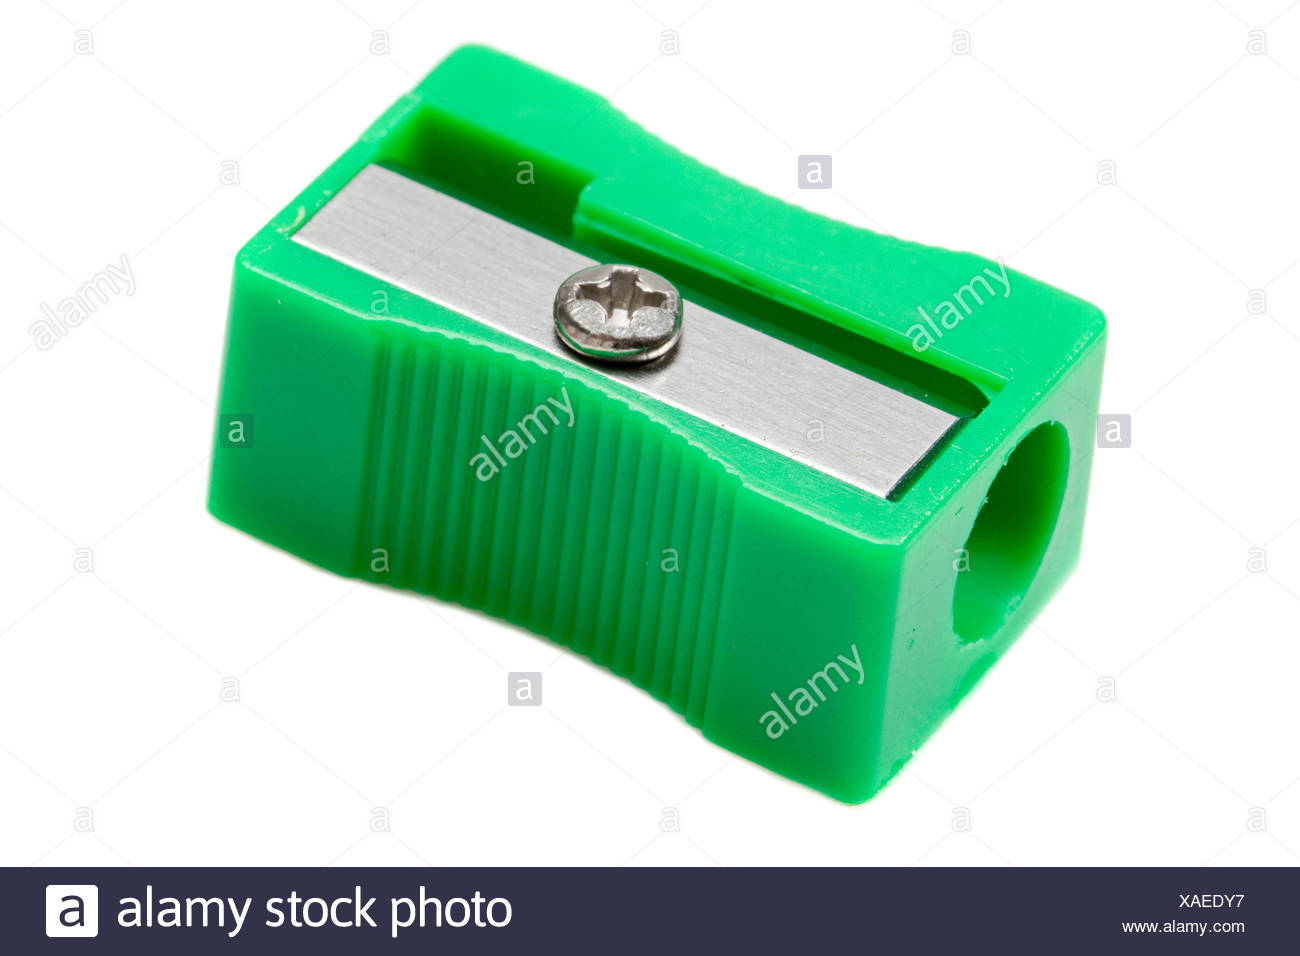 green one object - Stock Image